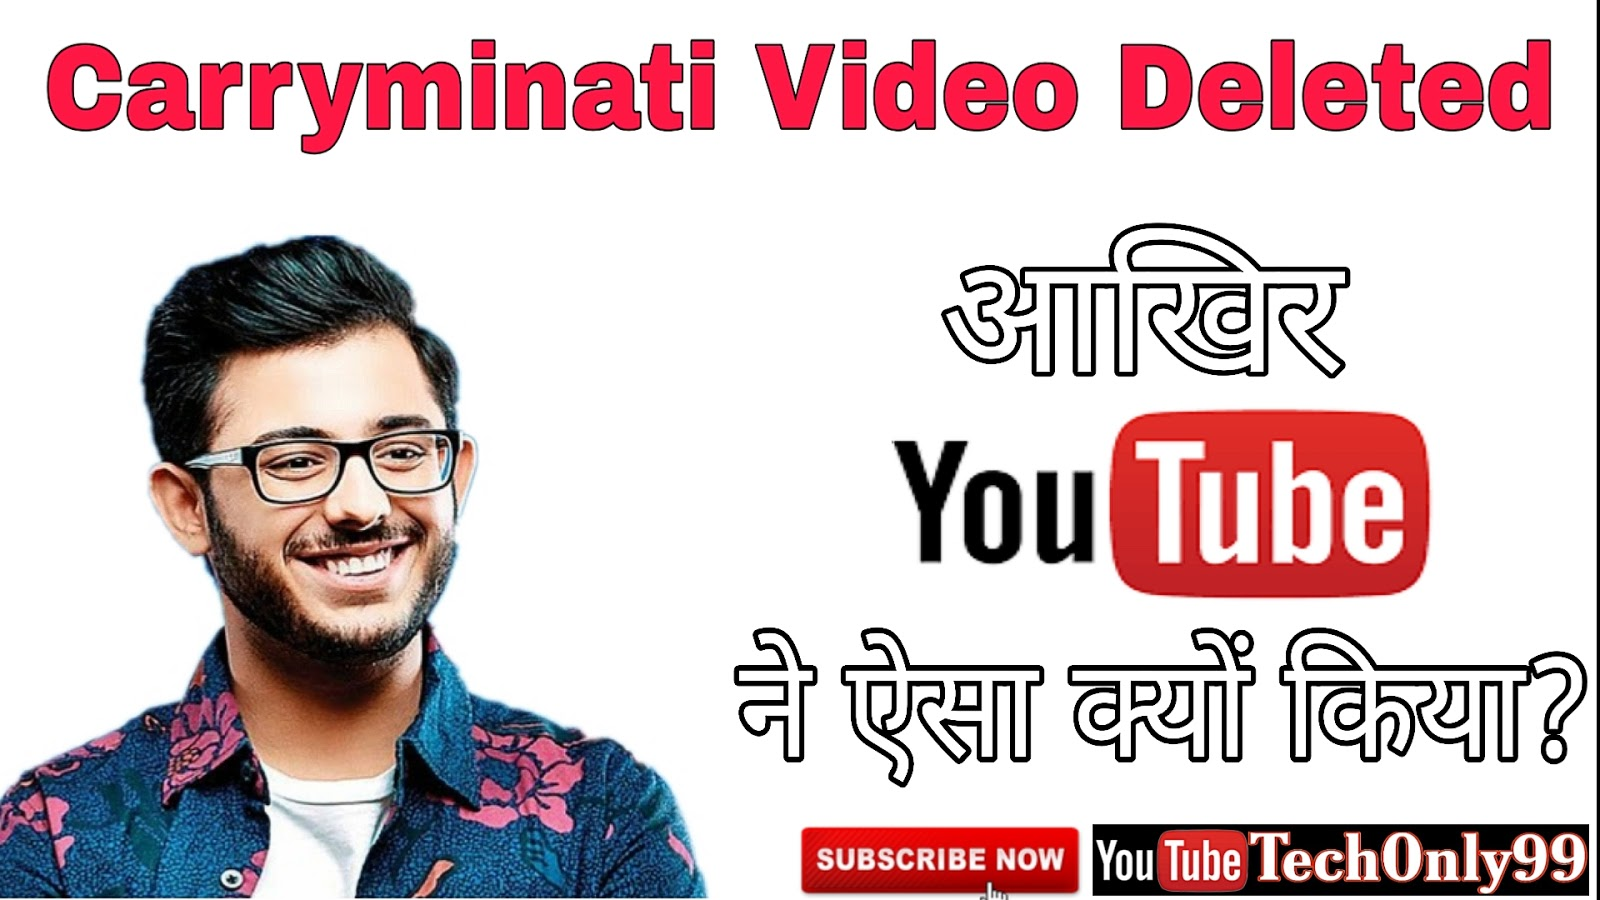 Why Carryminati Video Deleted/Removed on YouTube full Details in Hindi